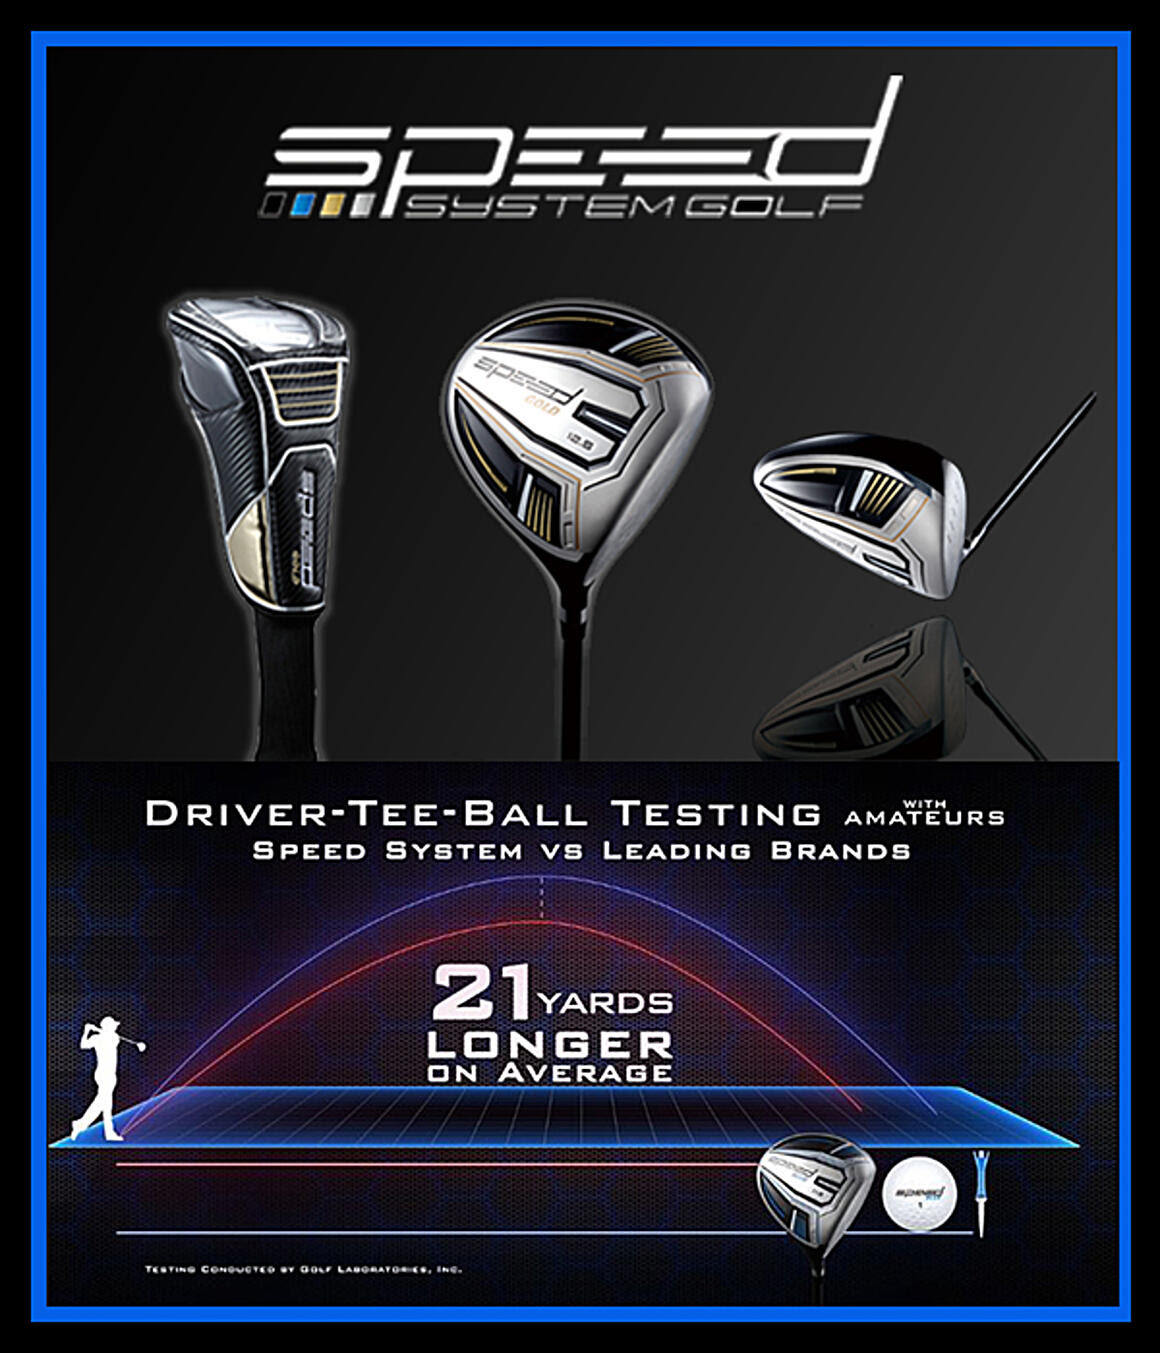 MORE GOLF TODAY Speed%20System%20Ad-2.jpg?width=1160&upscale=true&name=Speed%20System%20Ad-2